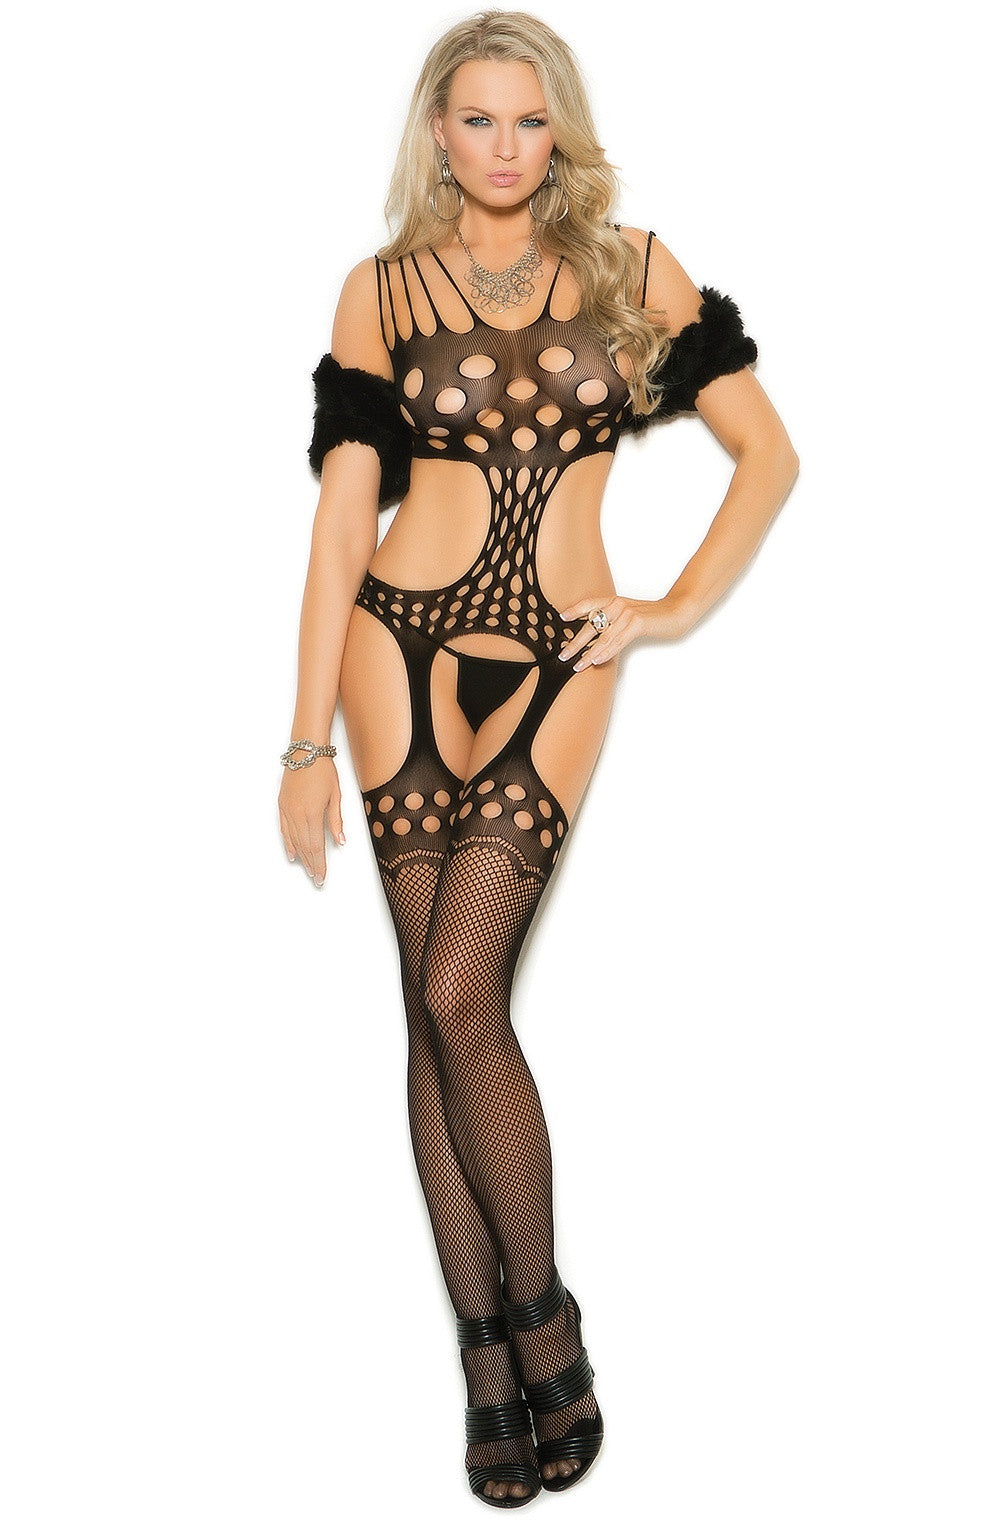 EM-1180 Crochet suspender bodystocking